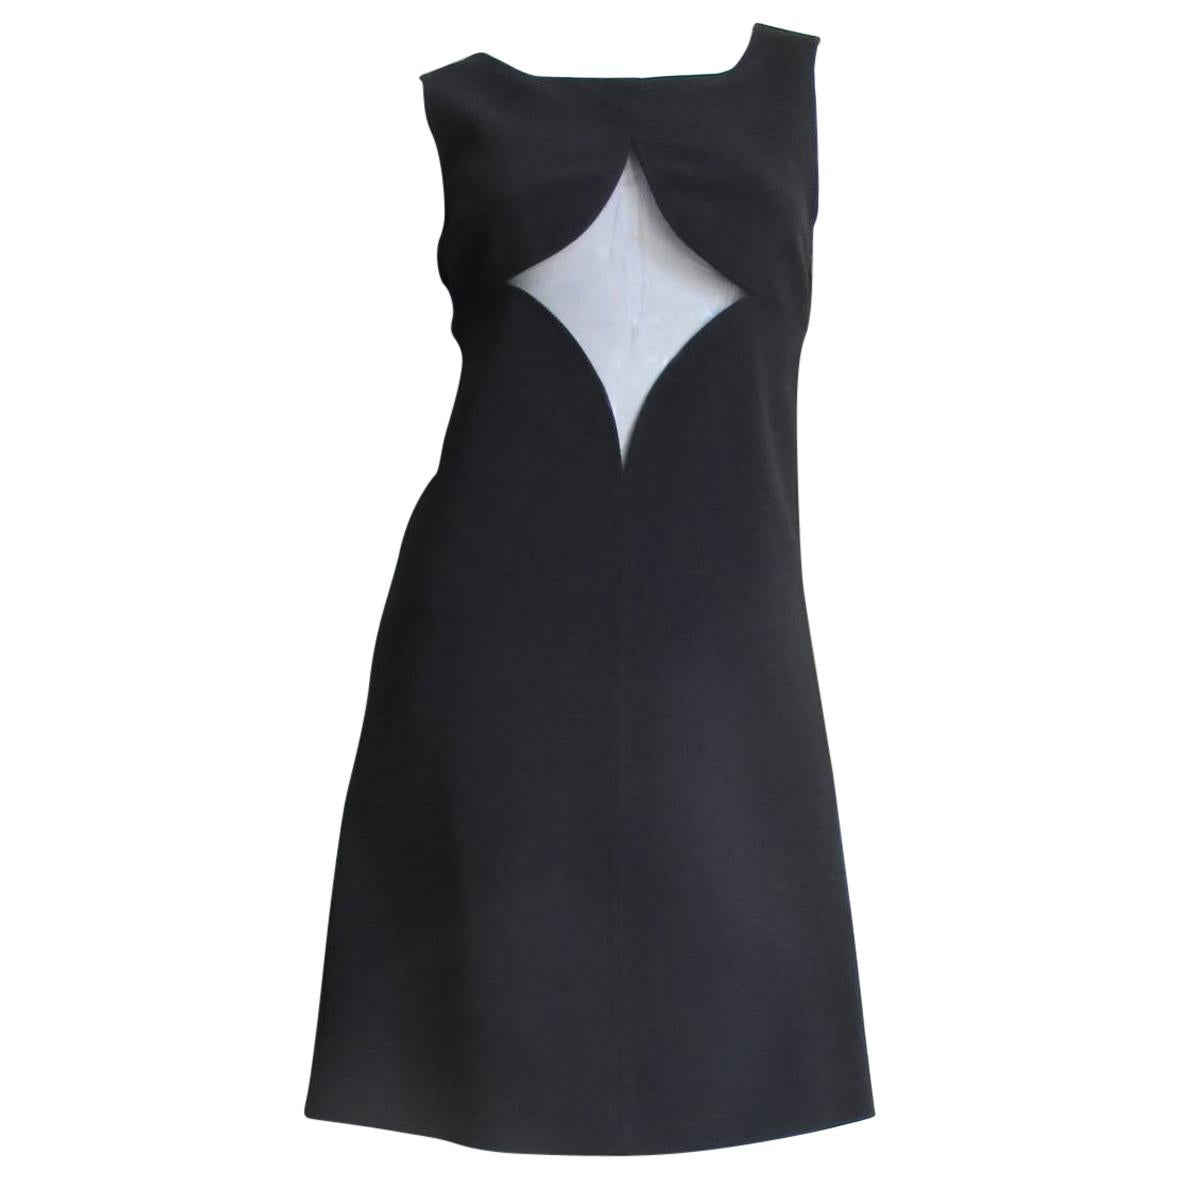 Courreges 1960s Dress with Cut outs